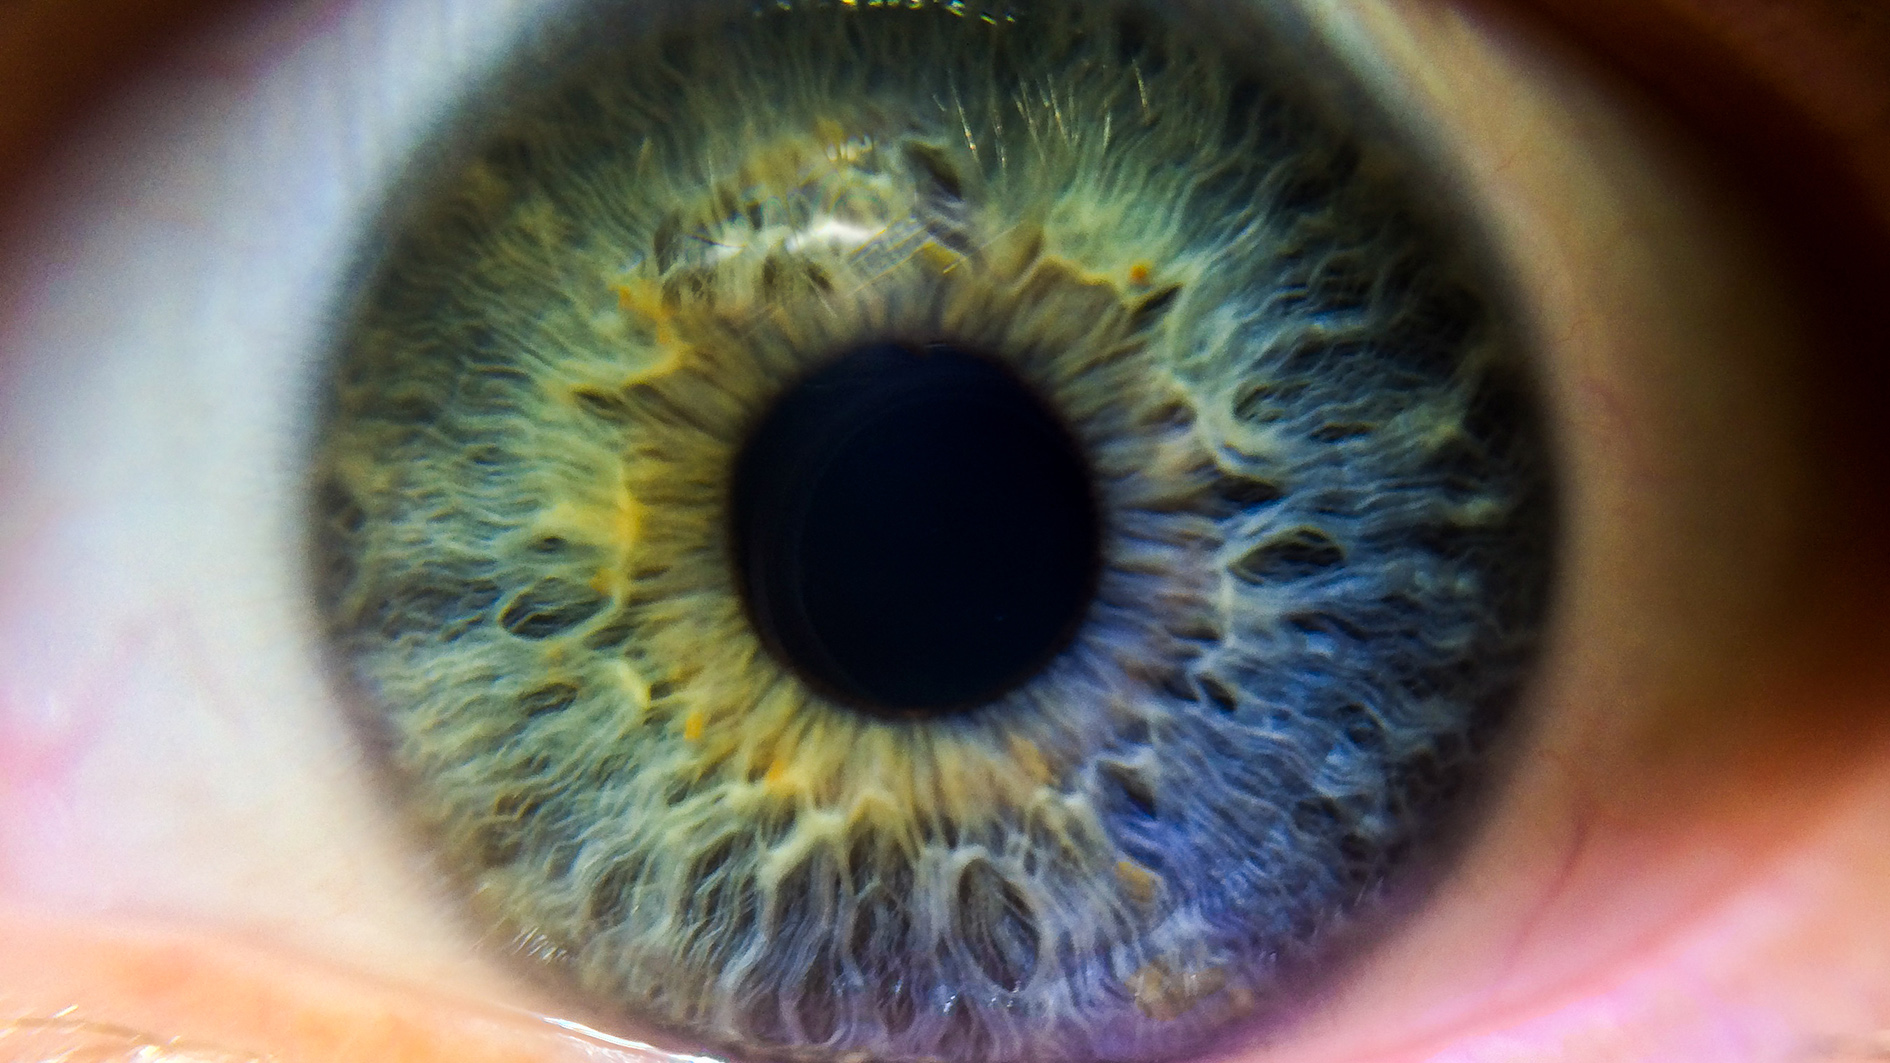 First UK patients get Novartis' Luxturna gene therapy for blindness -